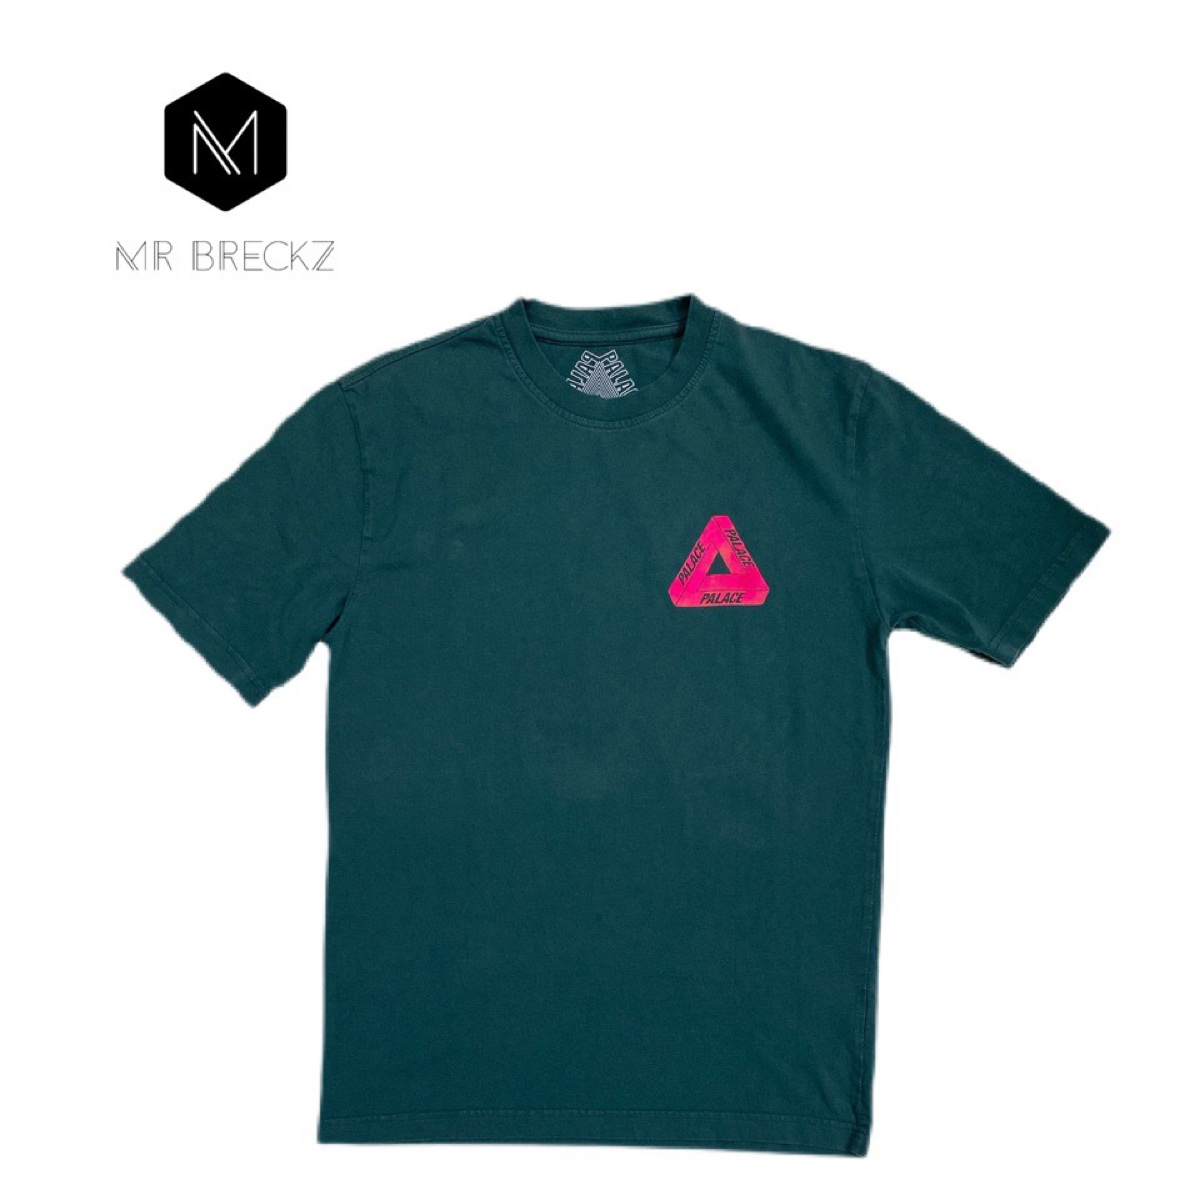 Authentic palace green tee